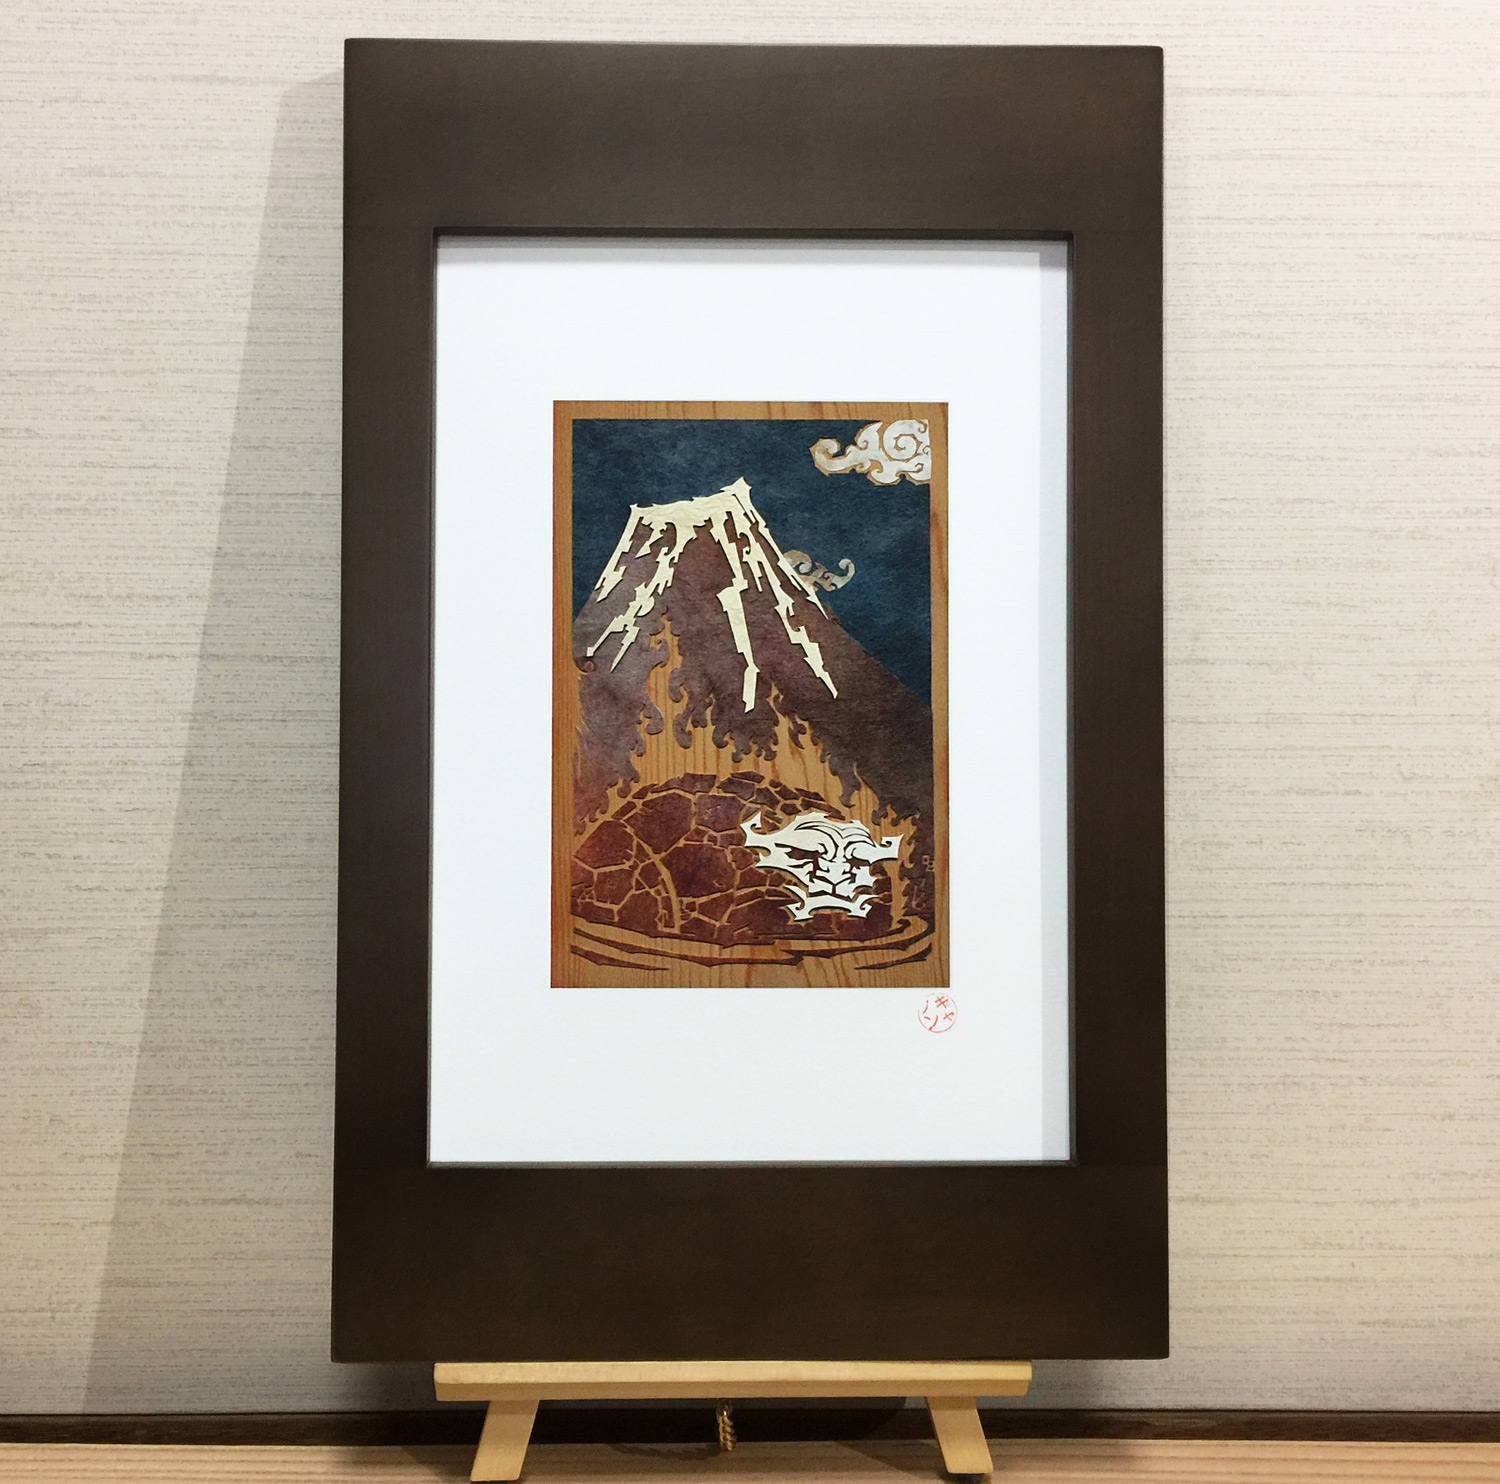 He of the Flame - open-edition giclée print